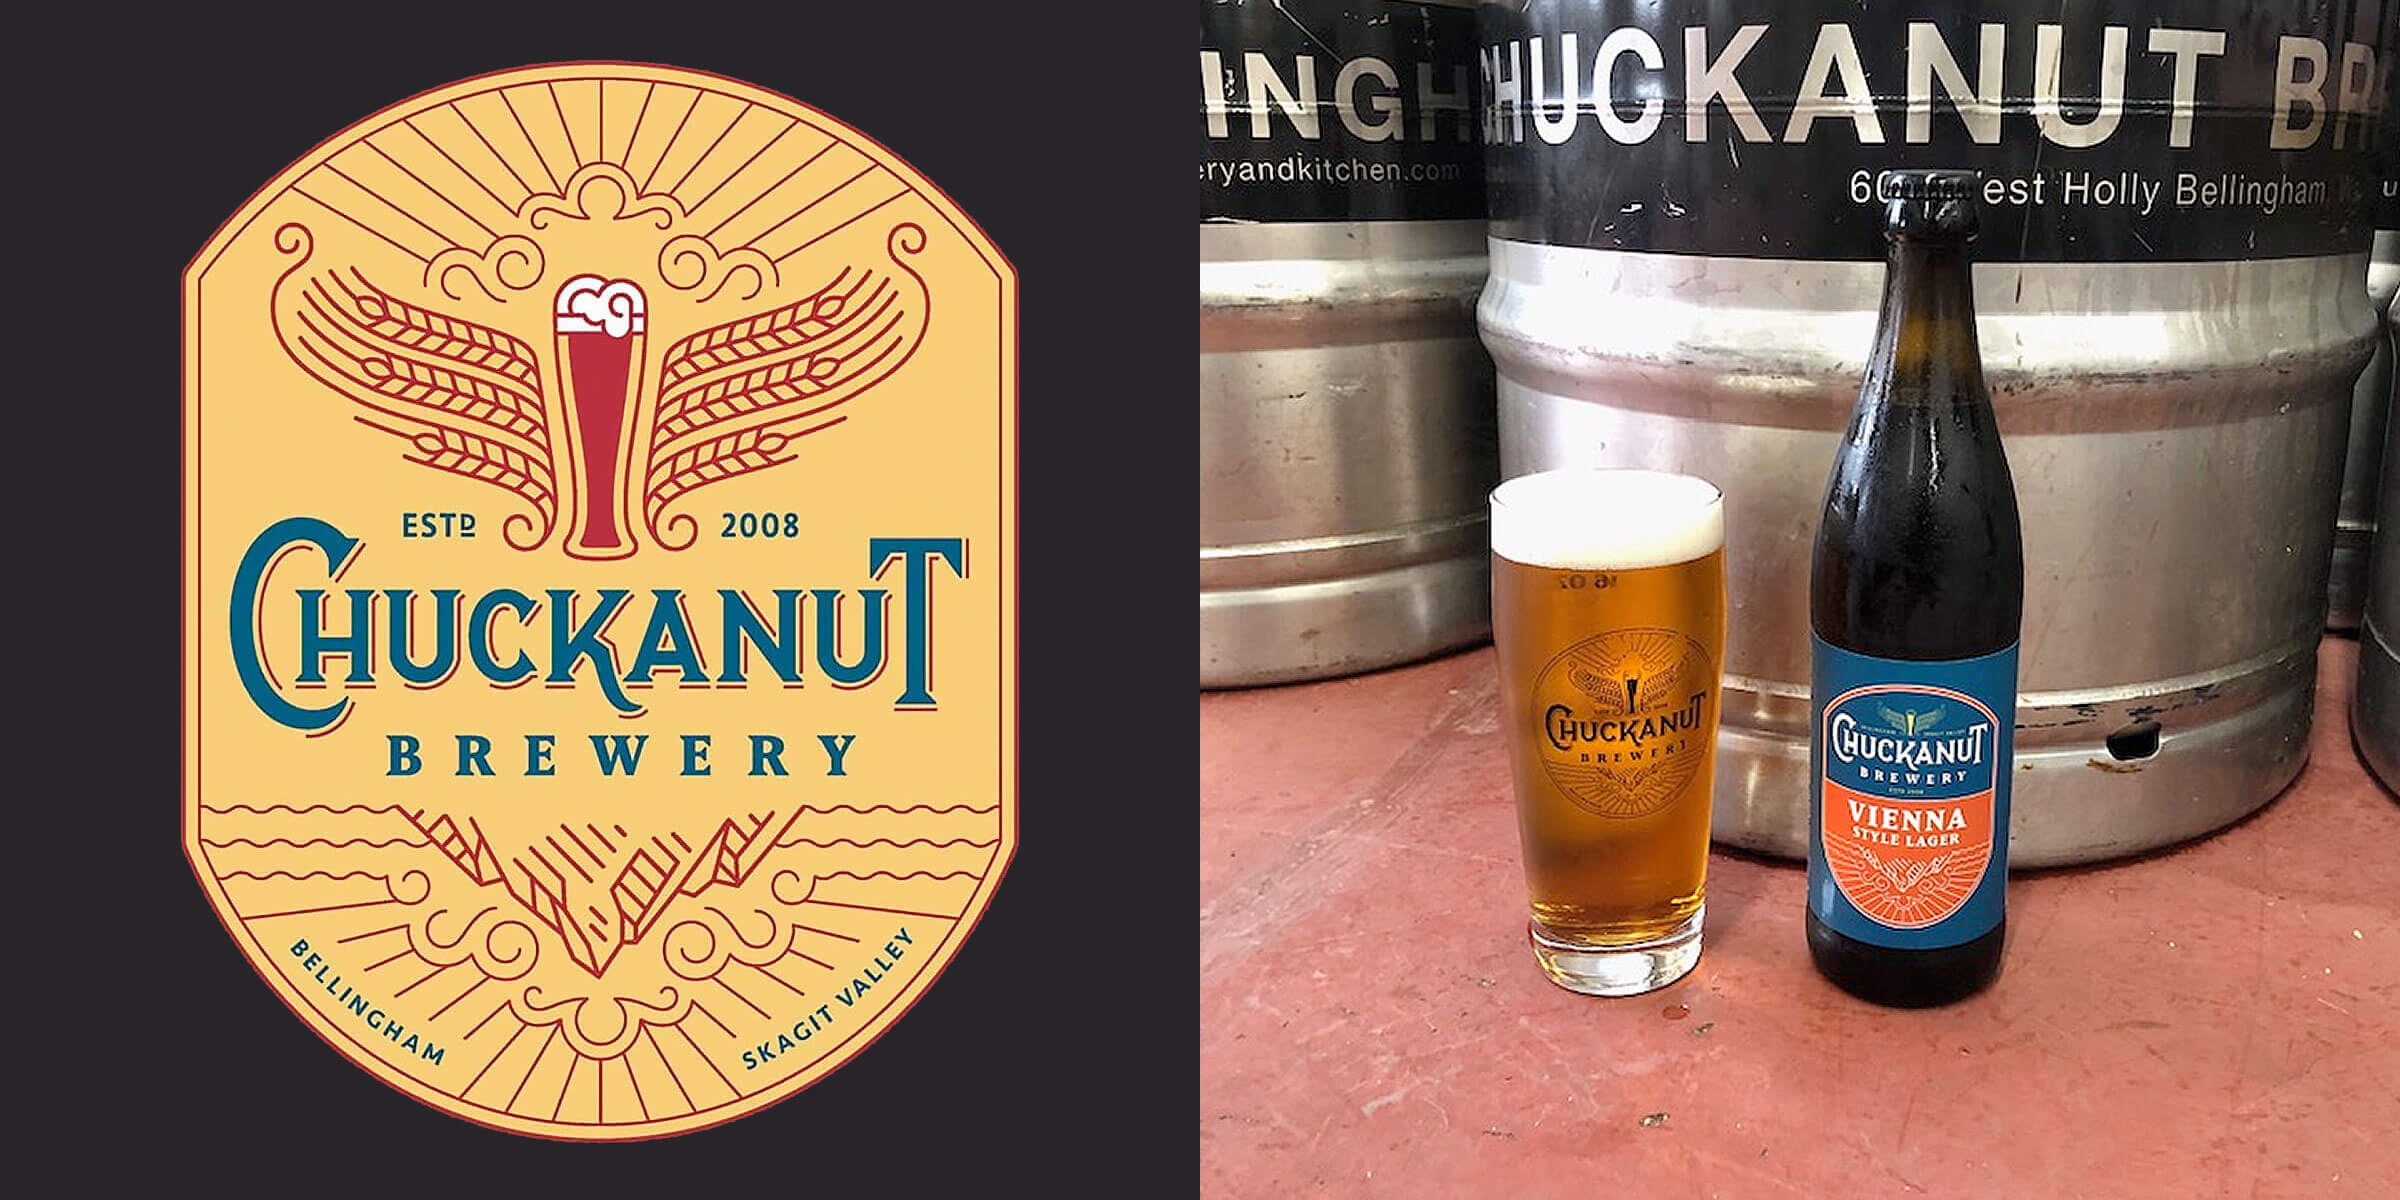 The Chuckanut Vienna Lager from Chuckanut Brewery has won four GABF awards and now, for the first time, is being bottled and shipped to retail markets.